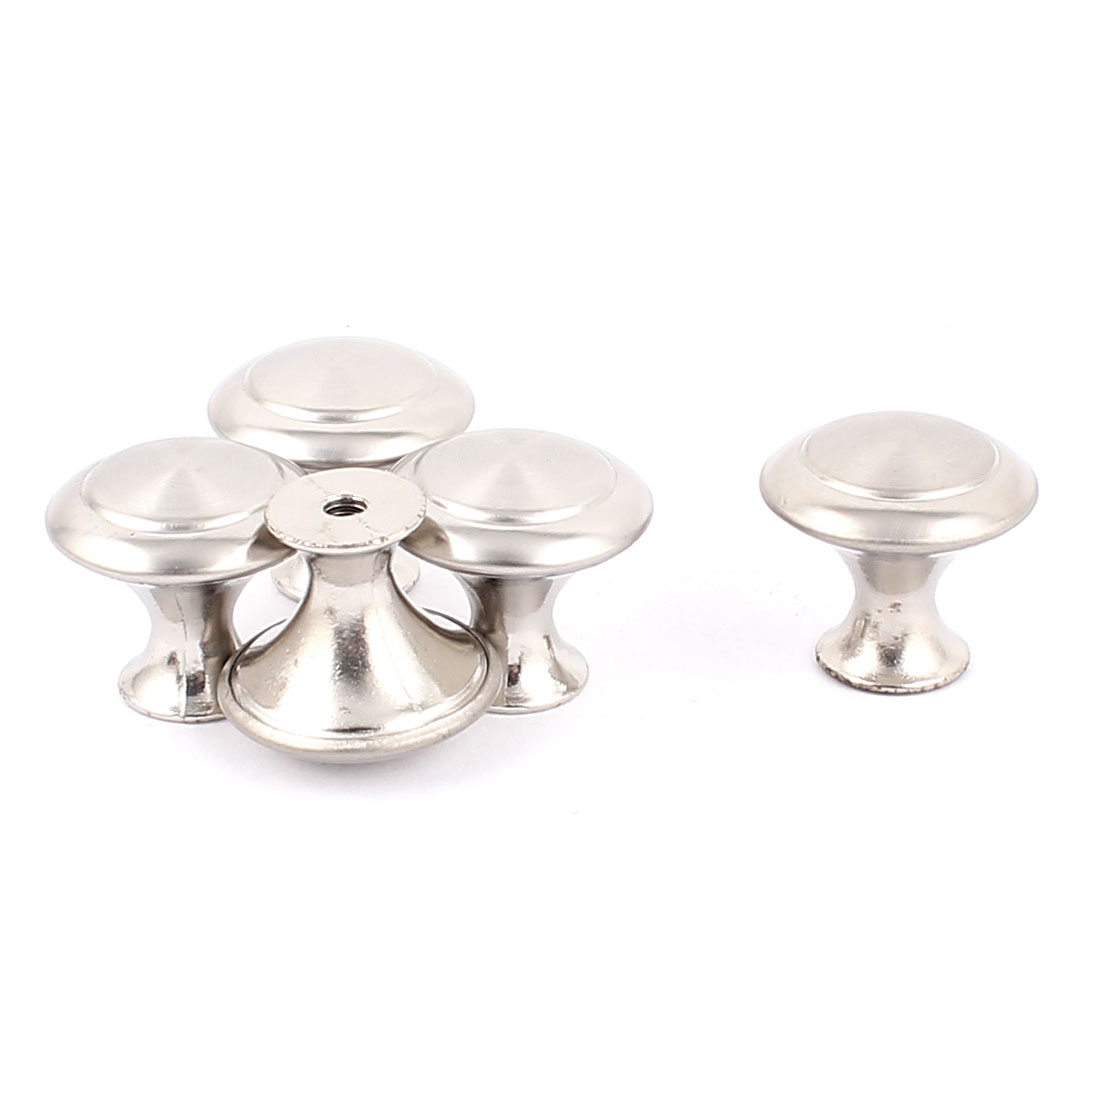 Cabinet Drawer Cupboard Closet Round Metal Pull Knob Handle Silver Tone 5Pcs